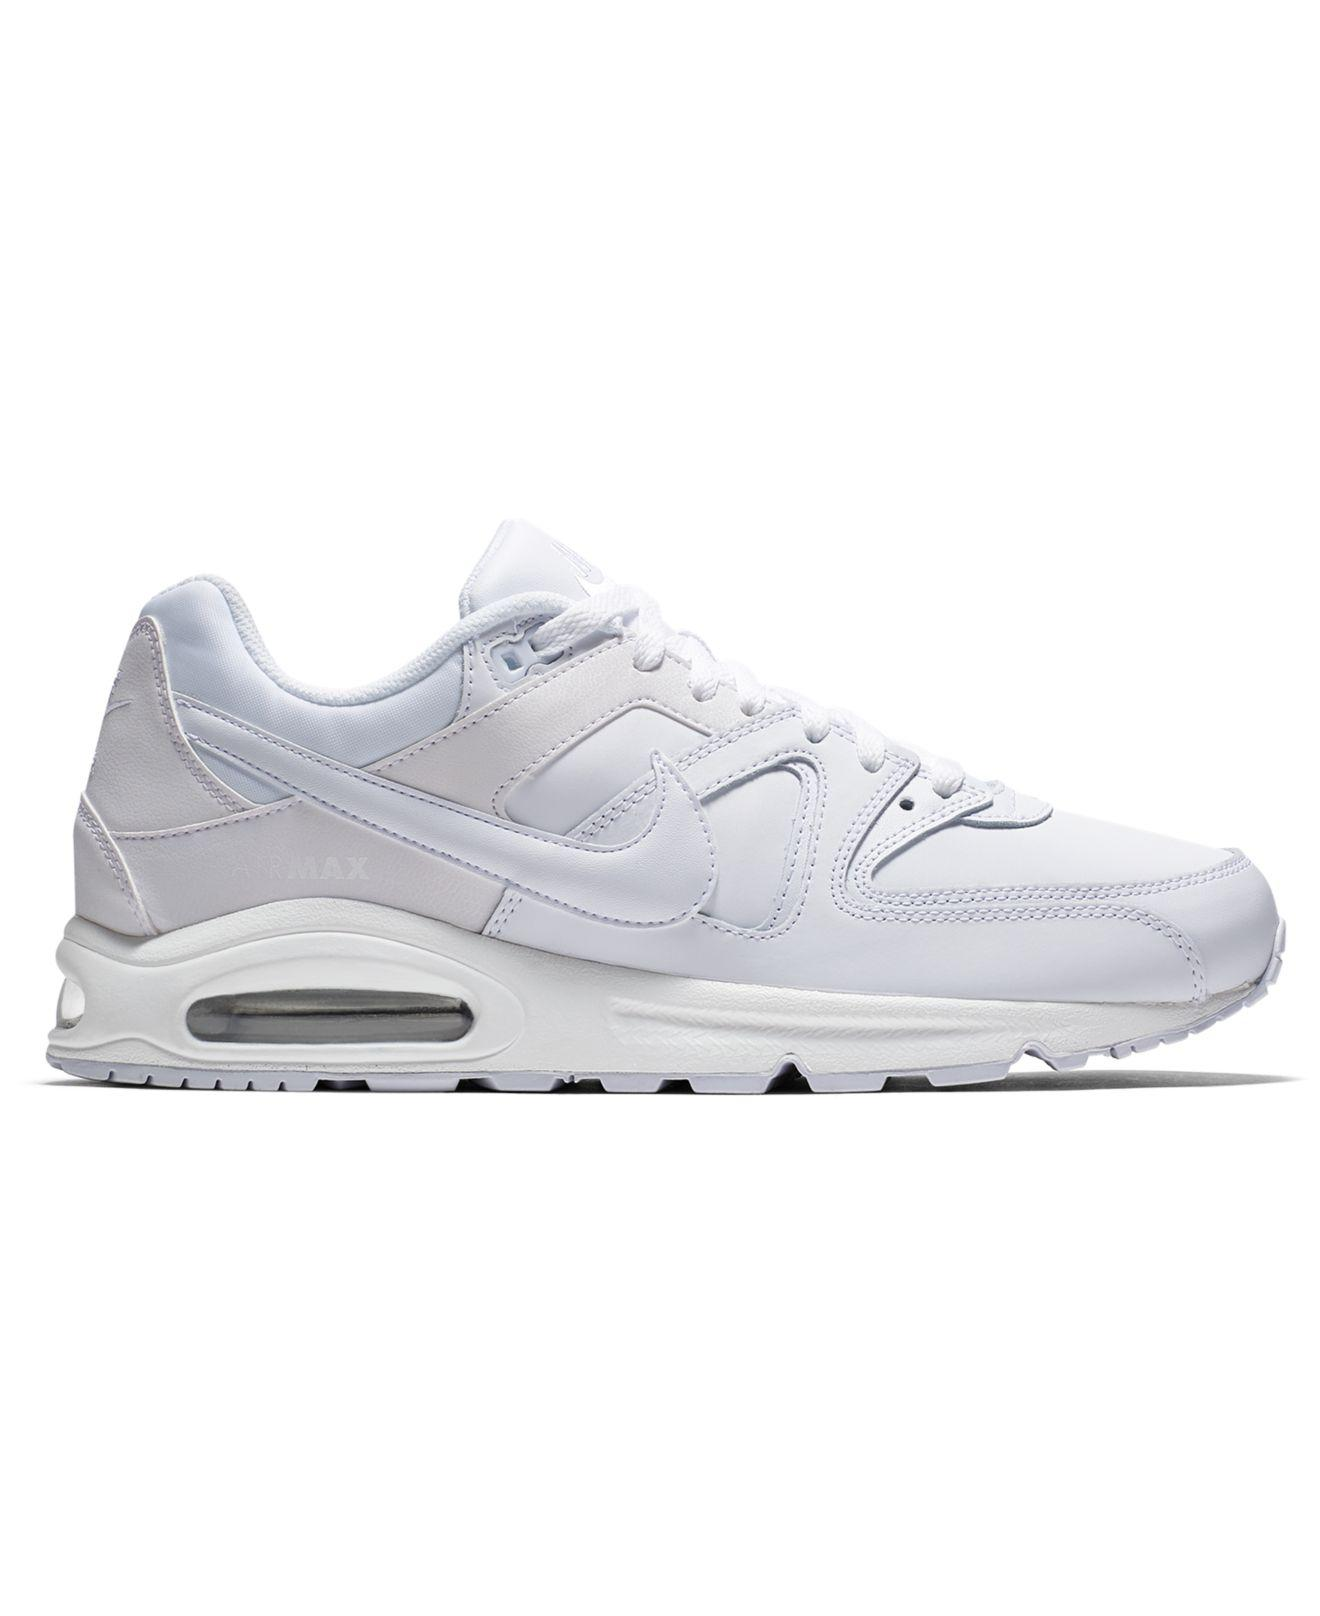 Lyst - Nike Air Max Command Leather Casual Sneakers From Finish Line ... 108b4043664d2